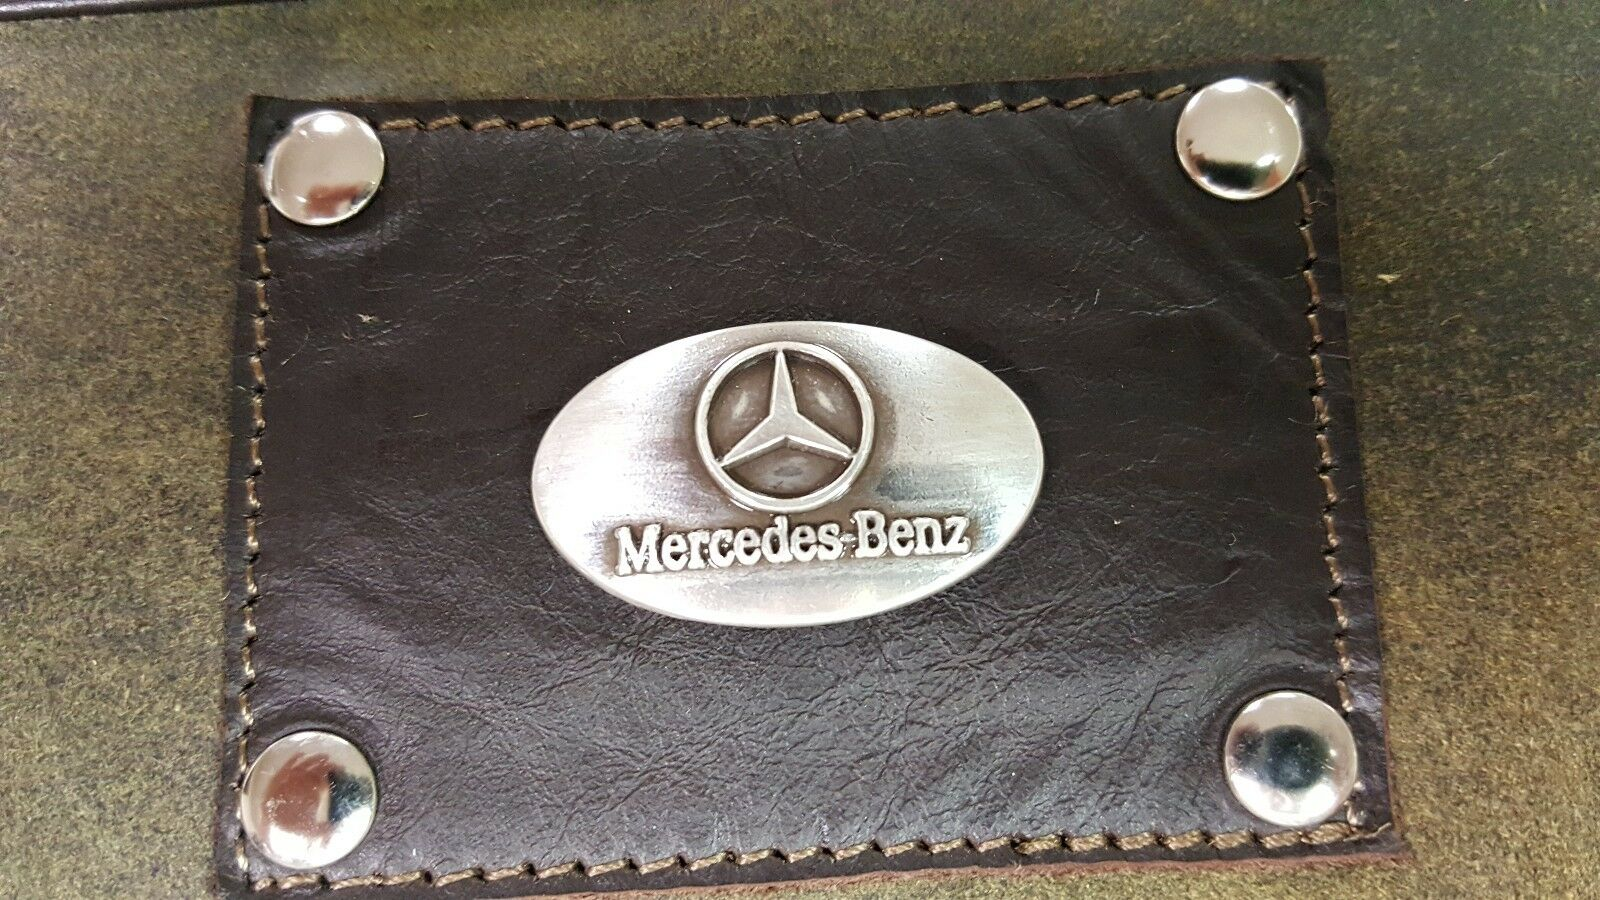 Mercedes Benz 3 Piece Leather Luggage Set- Duffle, Messenger